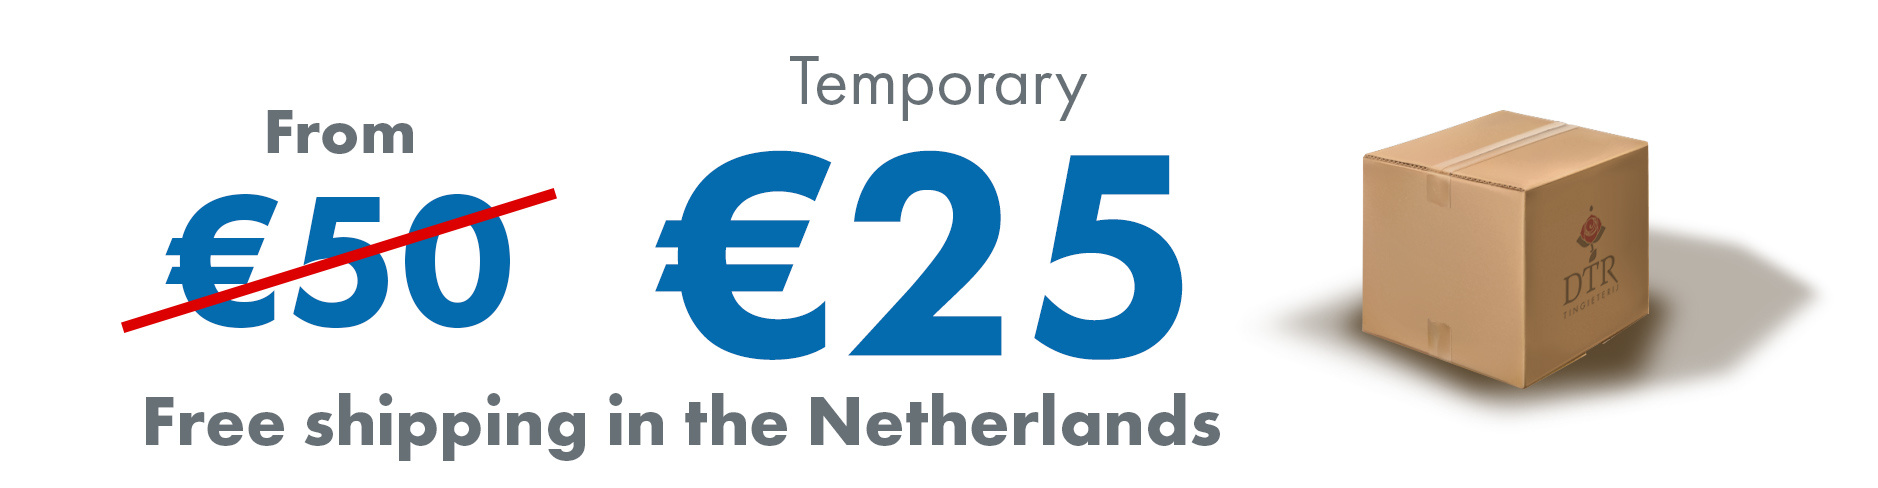 Temporary free shipping from 25 euro